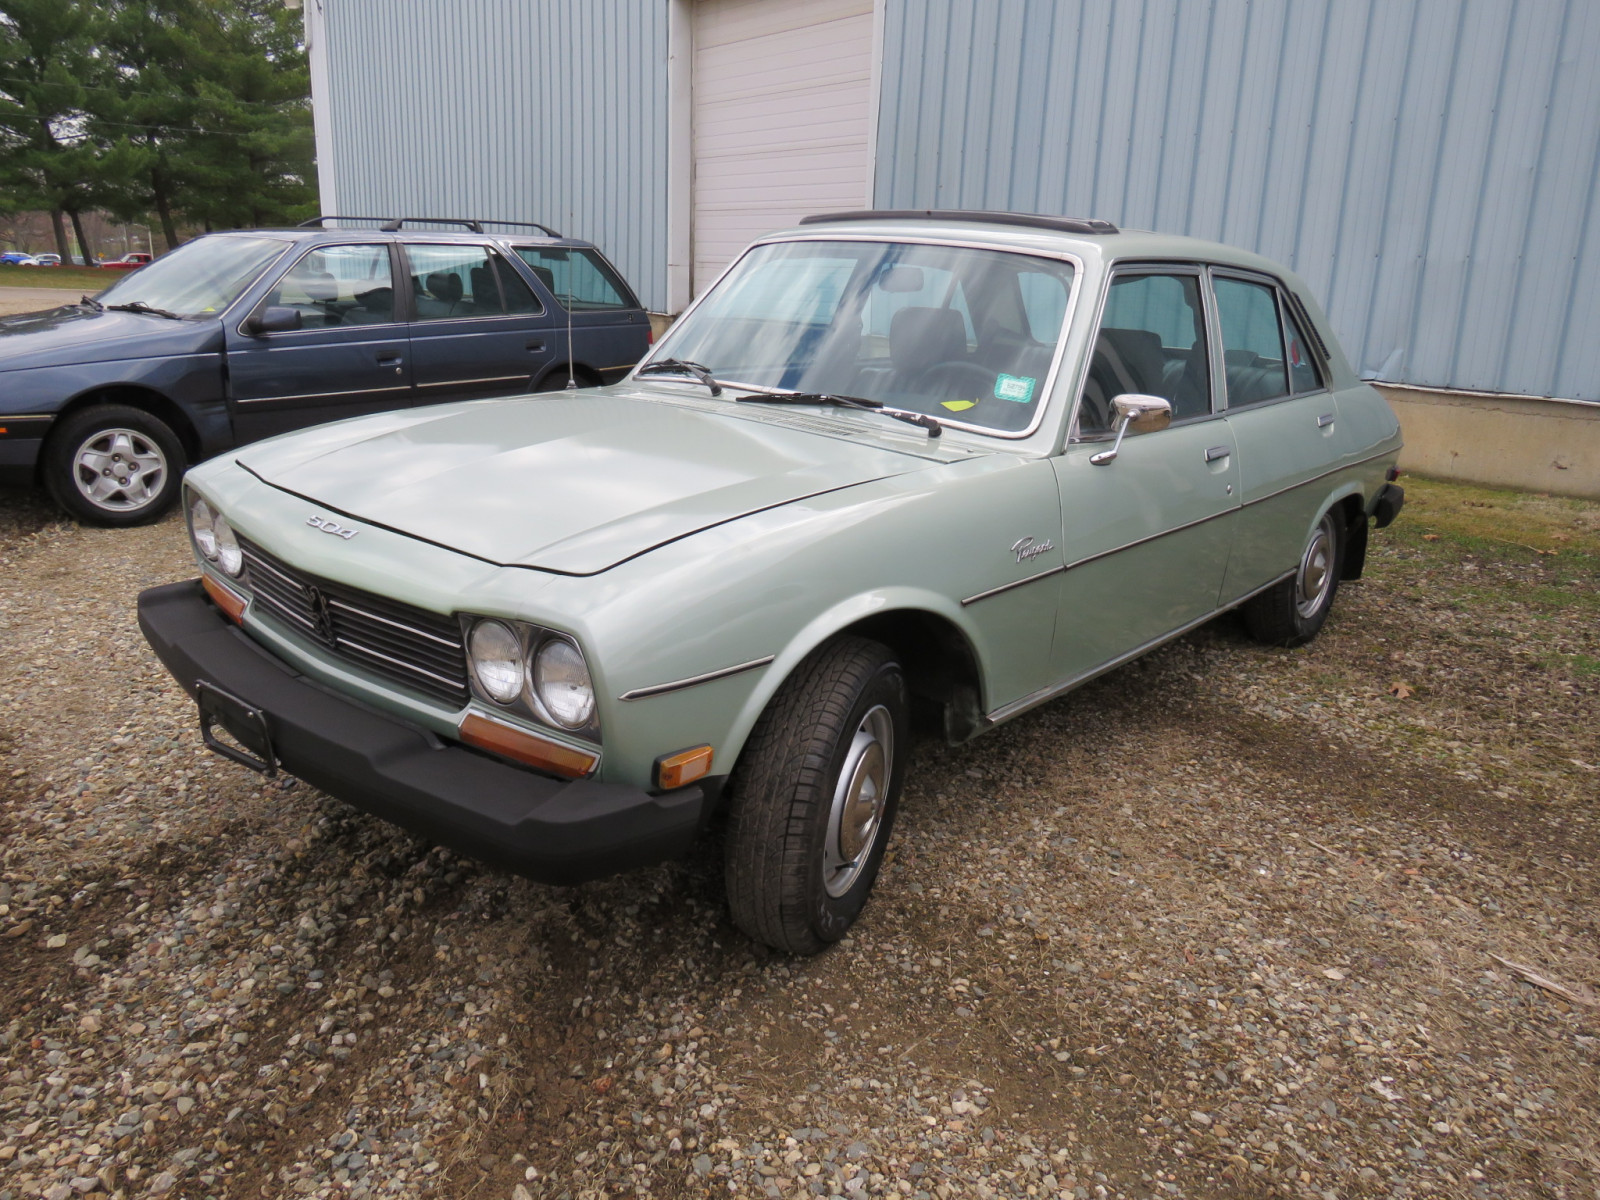 1979 Peugeot 504 4dr Automatique Sedan - Image 3